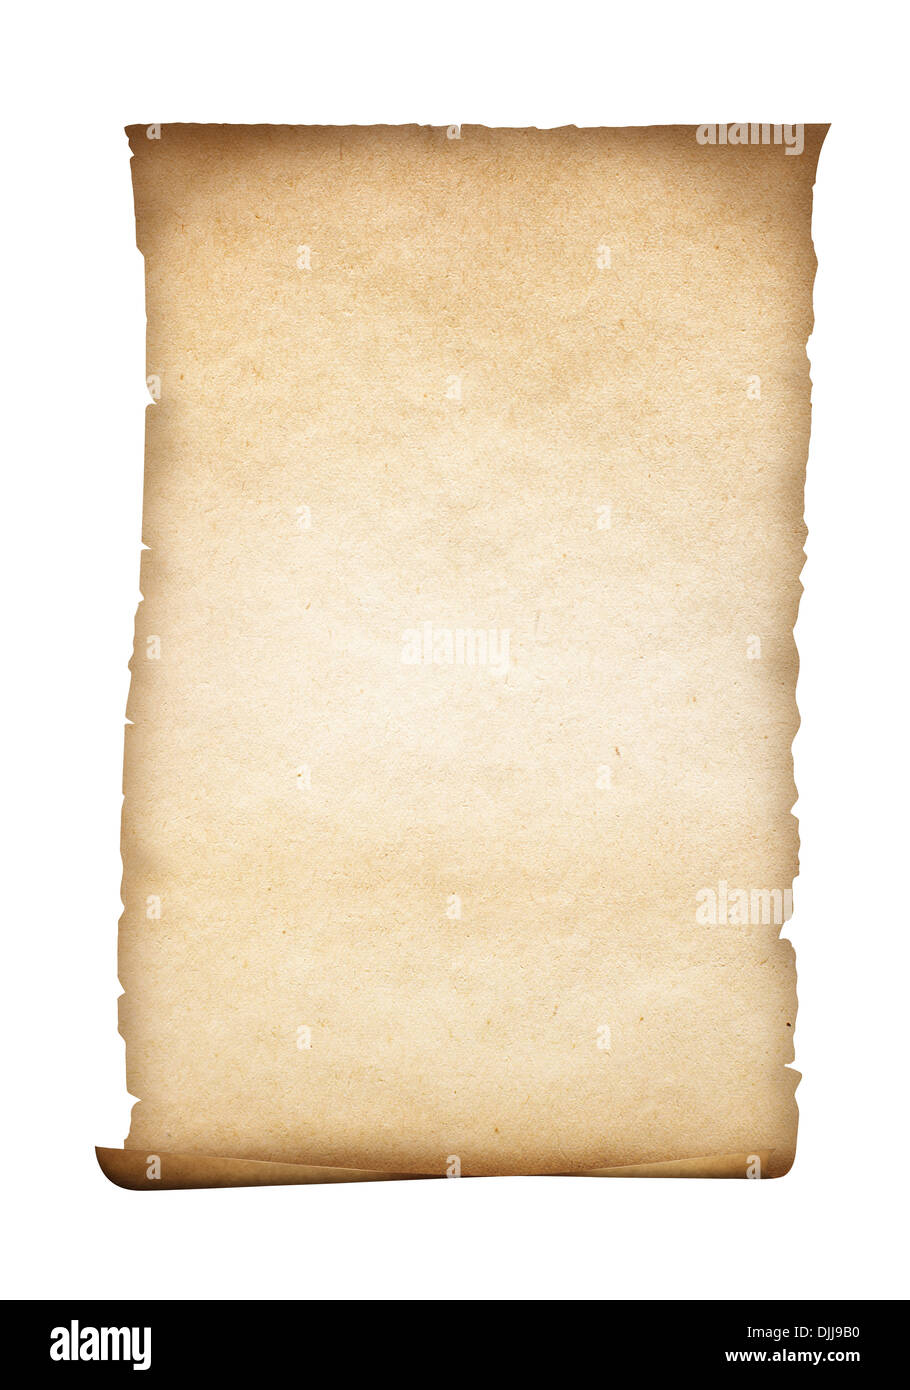 parchment or old paper isolated - Stock Image